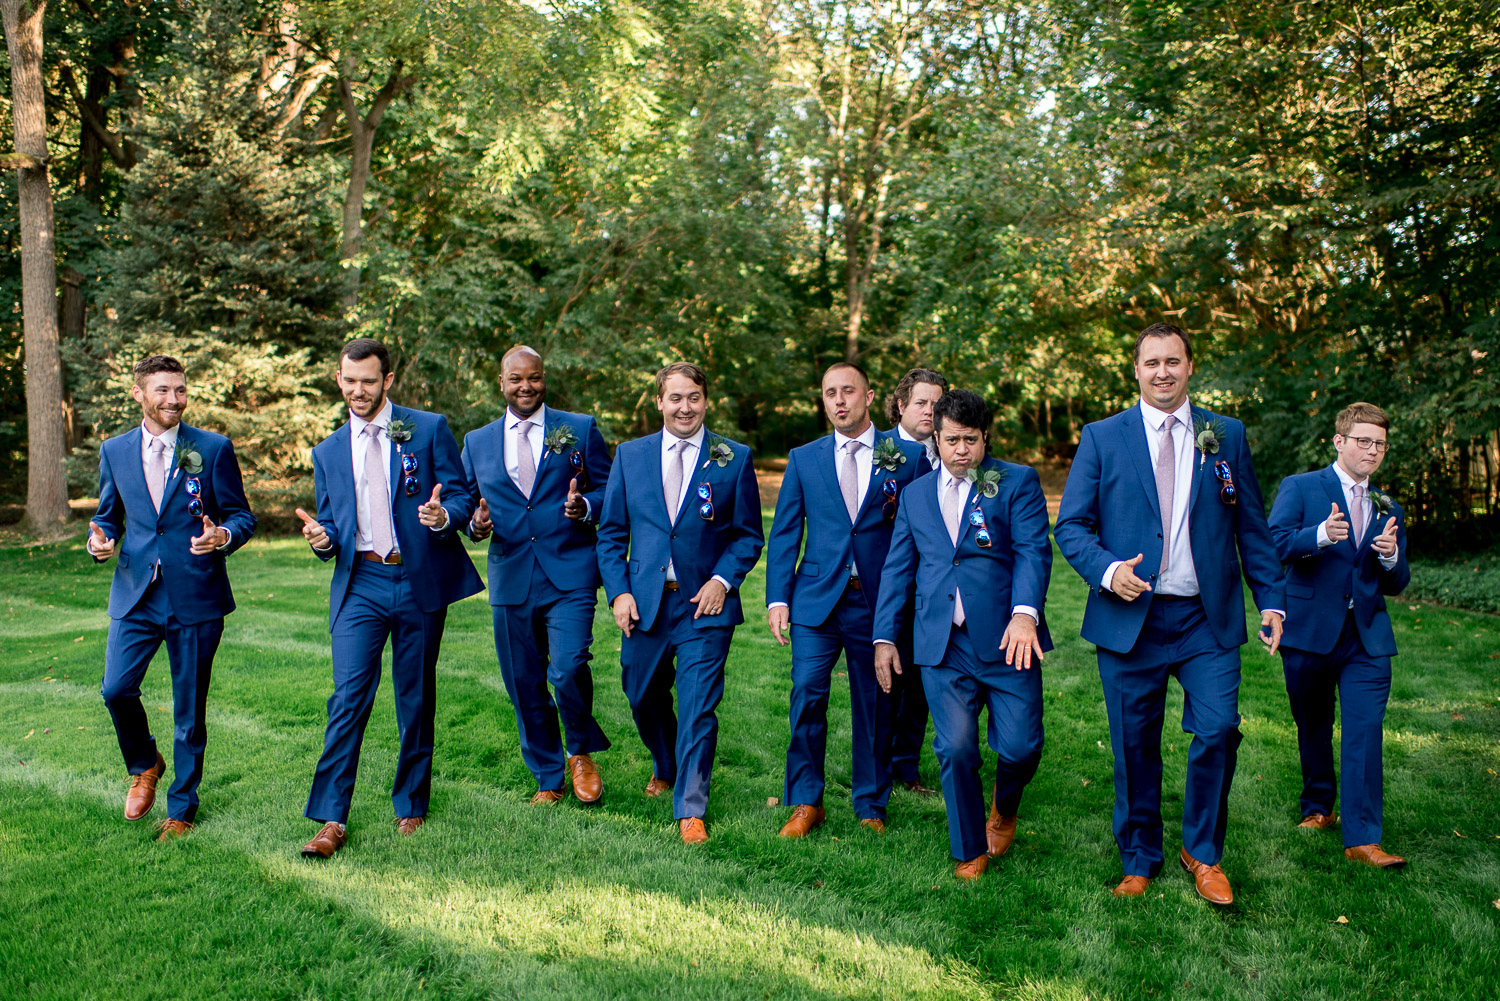 groomsmen walking with groom